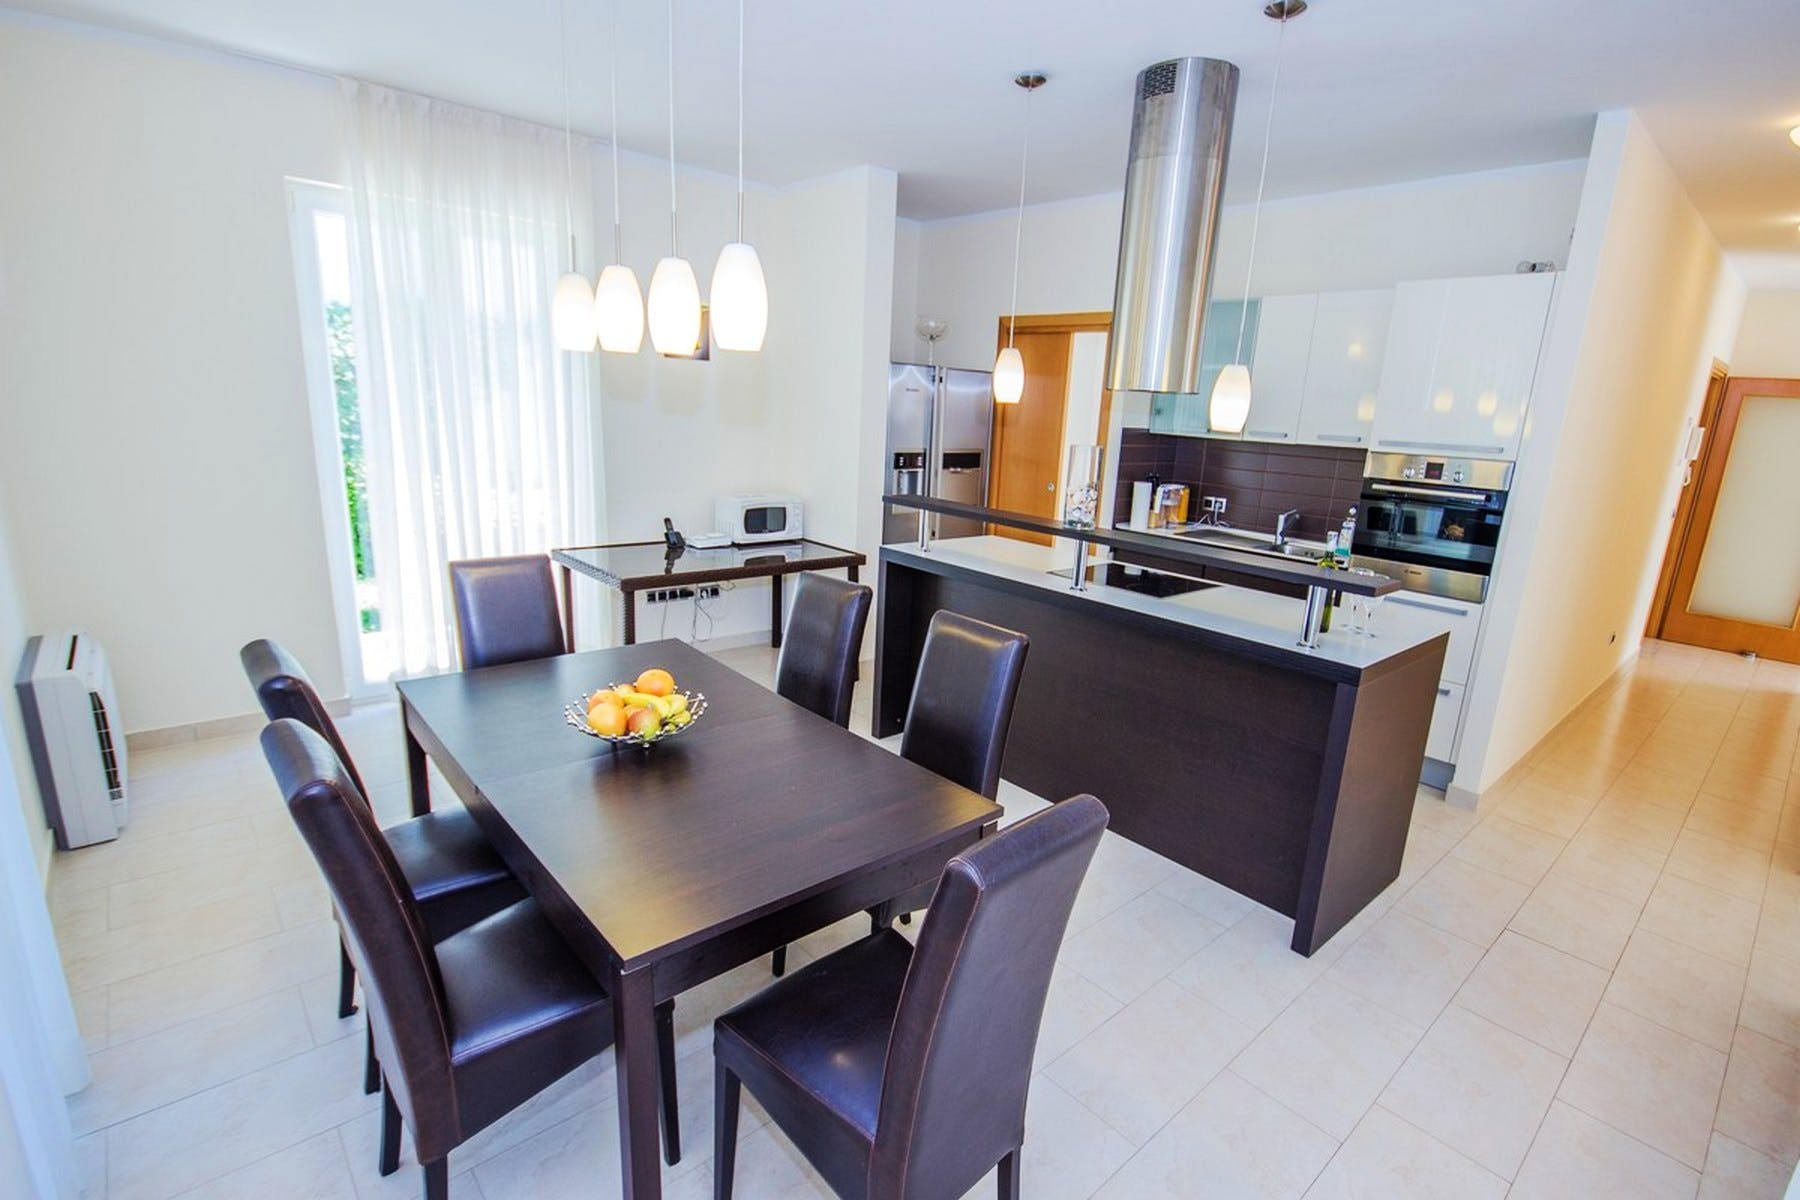 Dining and cooking area